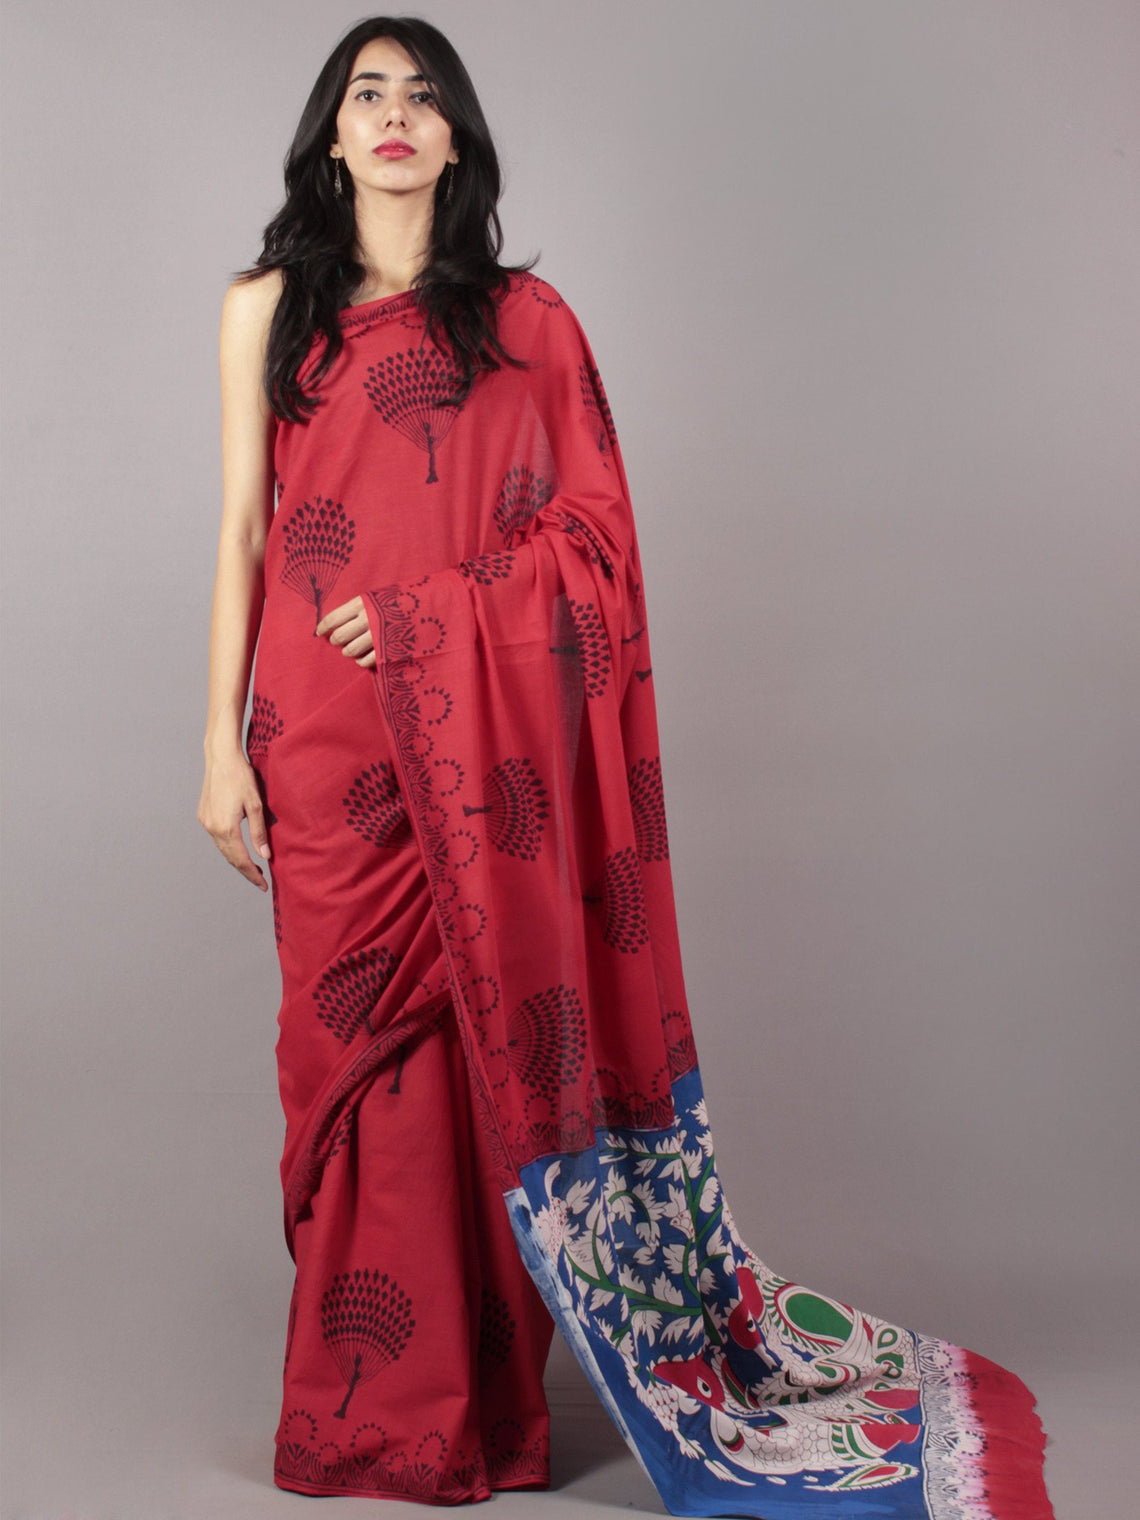 Scarlet Red Deep Indigo Hand Shibori Dyed Cotton Saree With Multi Color Kalamkari Printed Pallu - S031701708